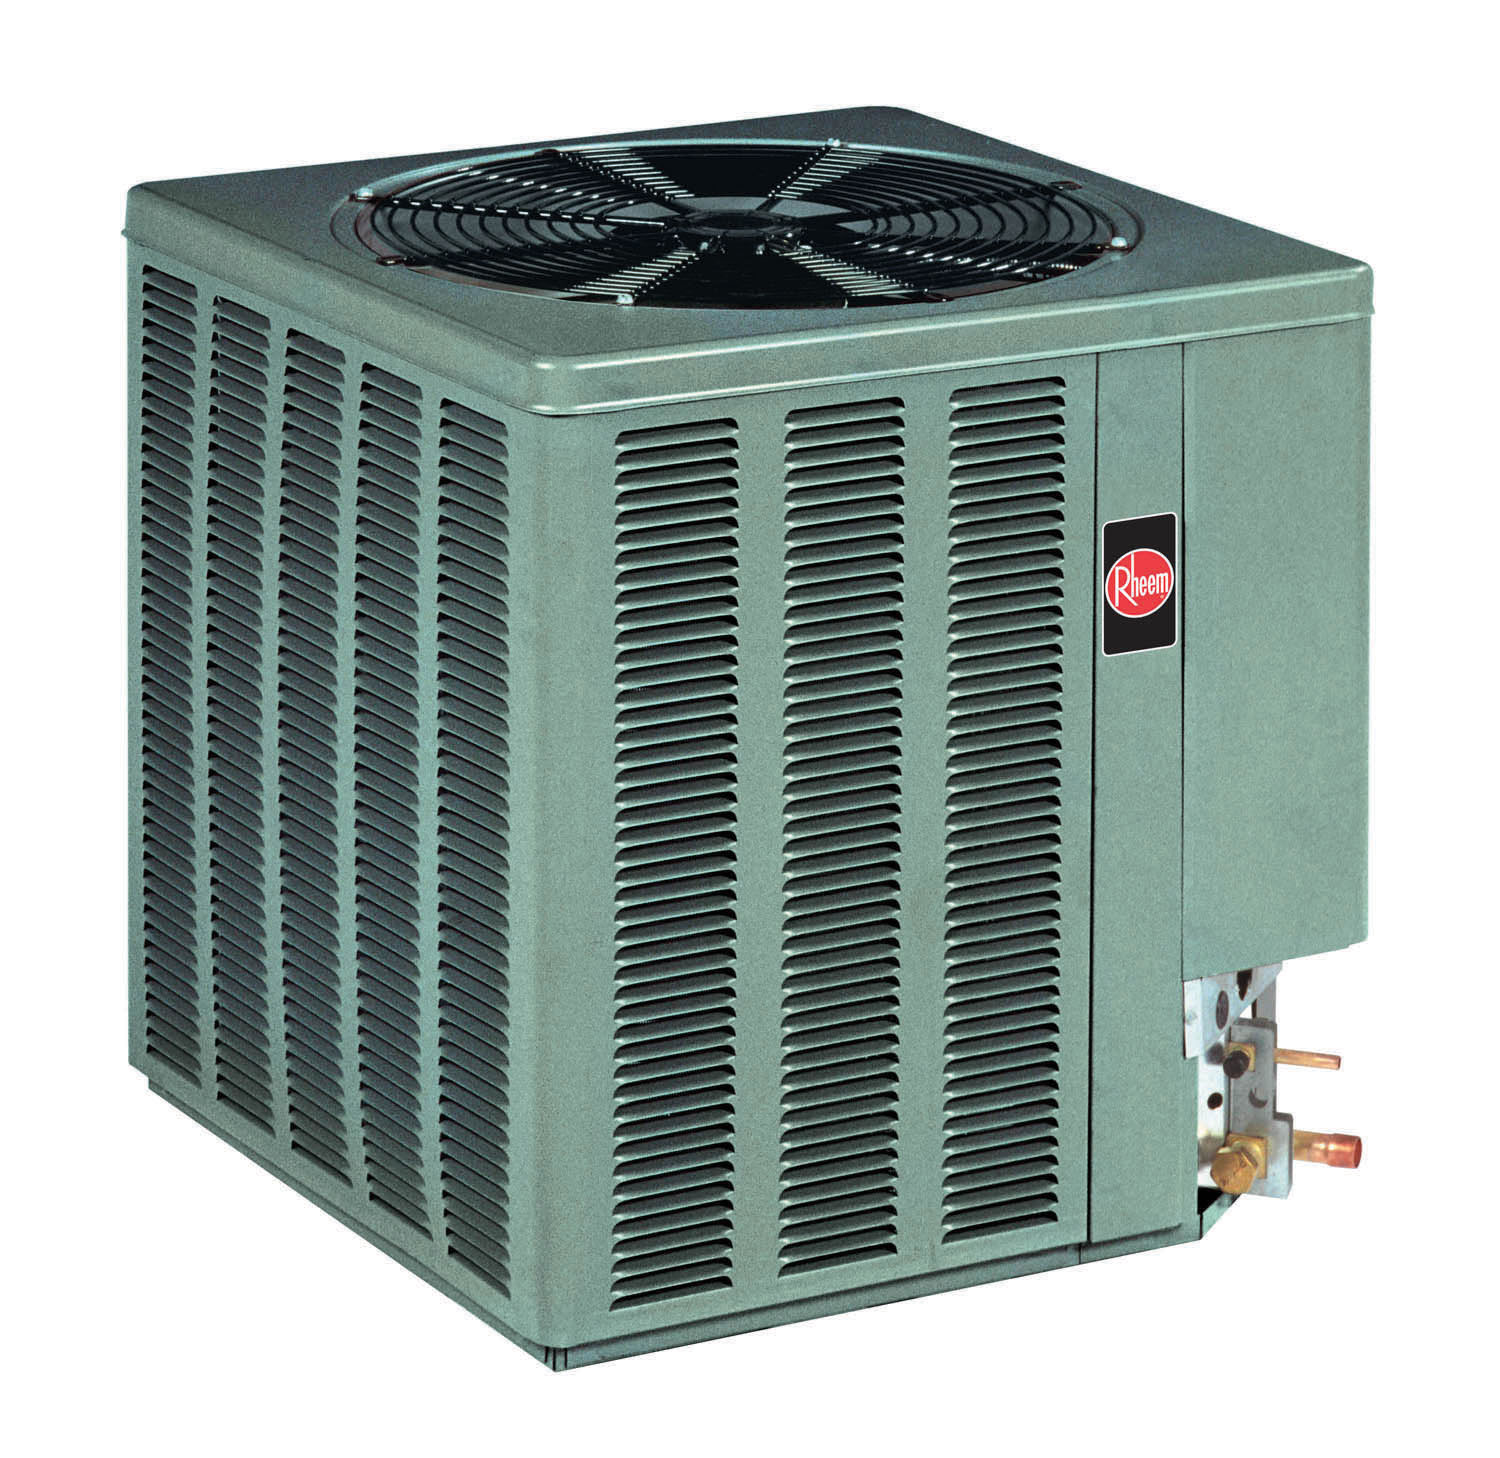 Rheem Value 14AJM 13AJN Air Conditioner parts of air conditioner grihon com ac, coolers & devices  at reclaimingppi.co